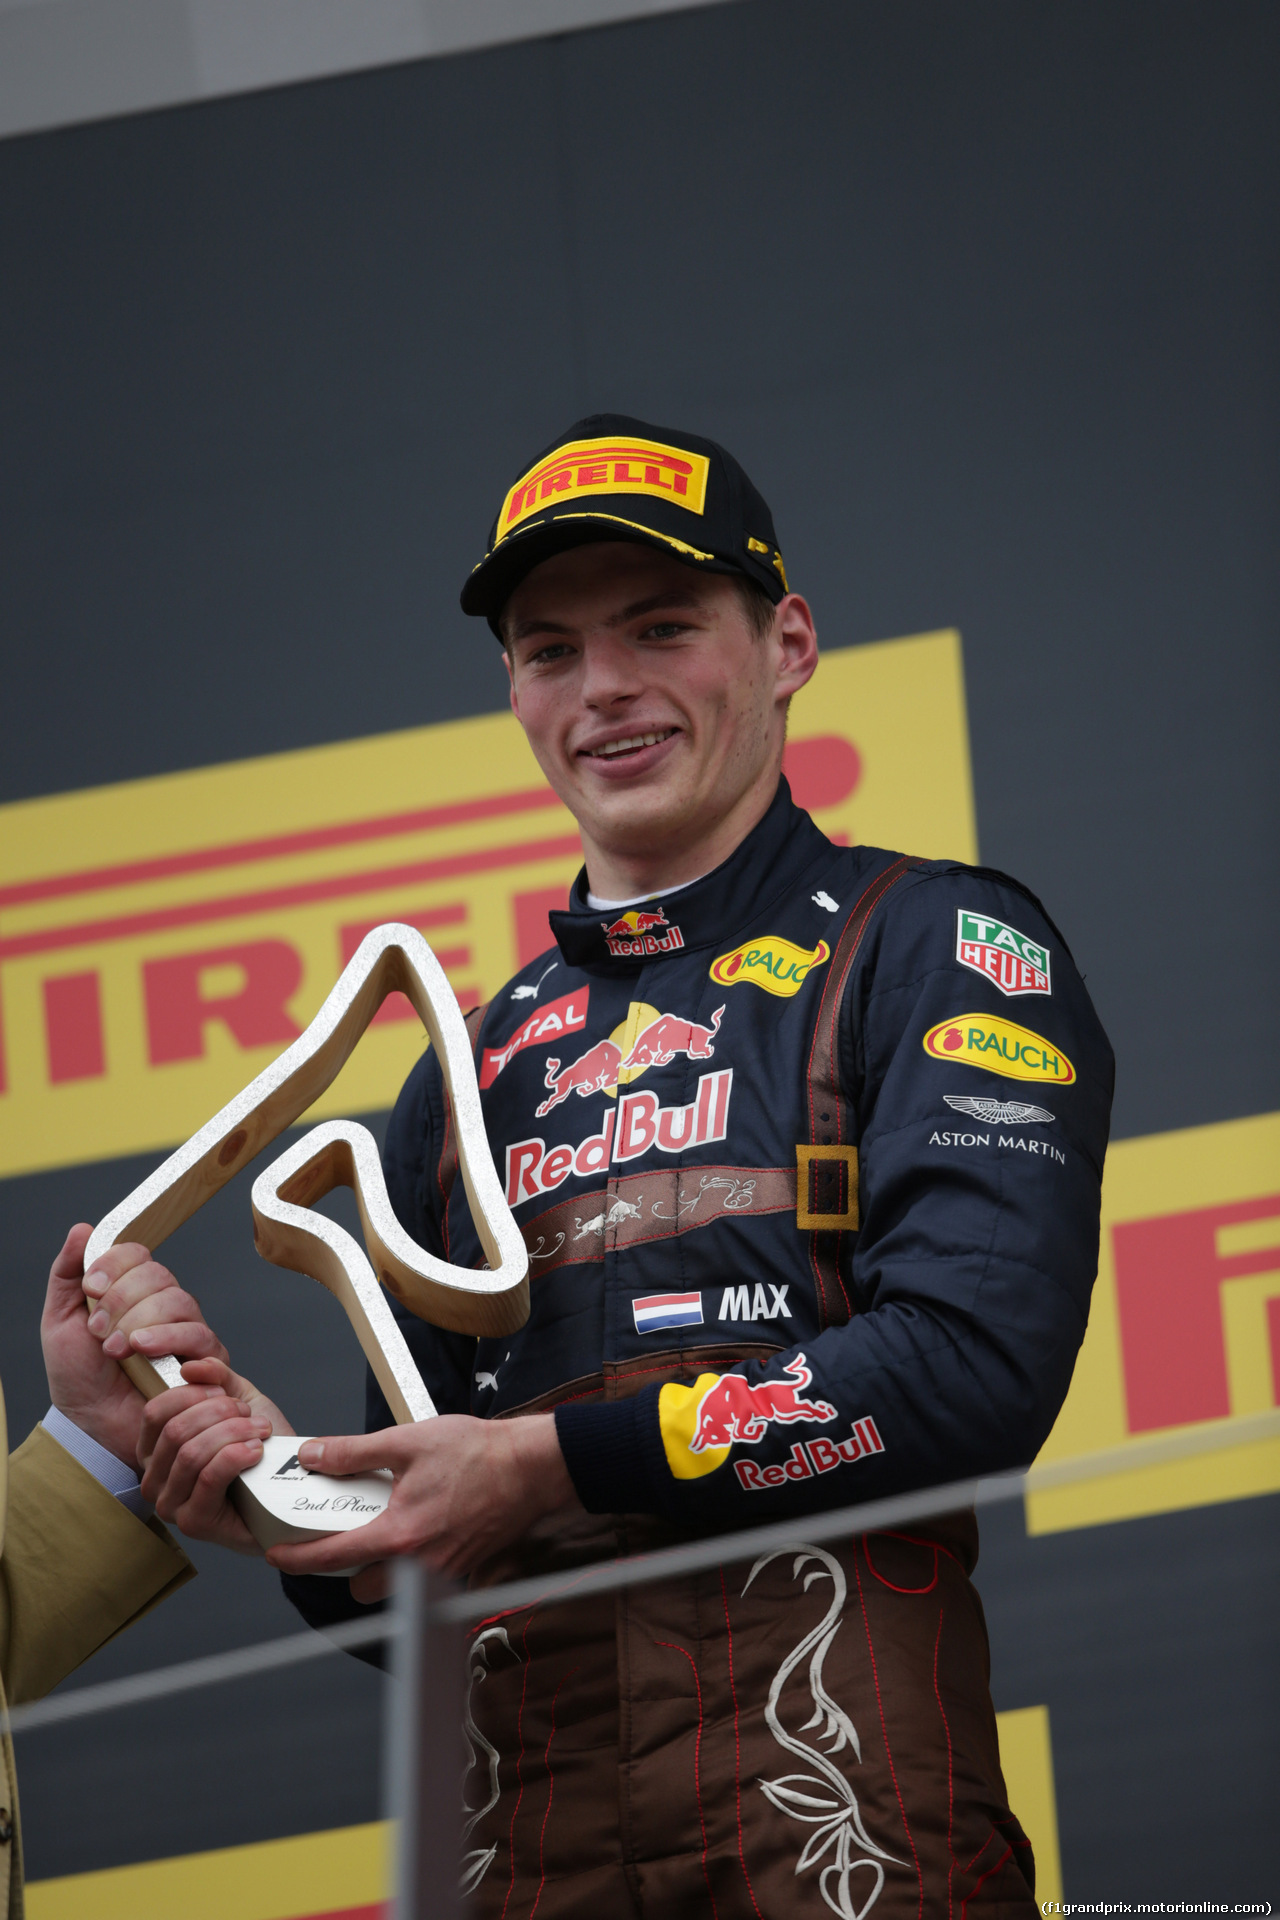 GP AUSTRIA, 03.07.2016 - Podium, 2nd place Max Verstappen (NED) Red Bull Racing RB12